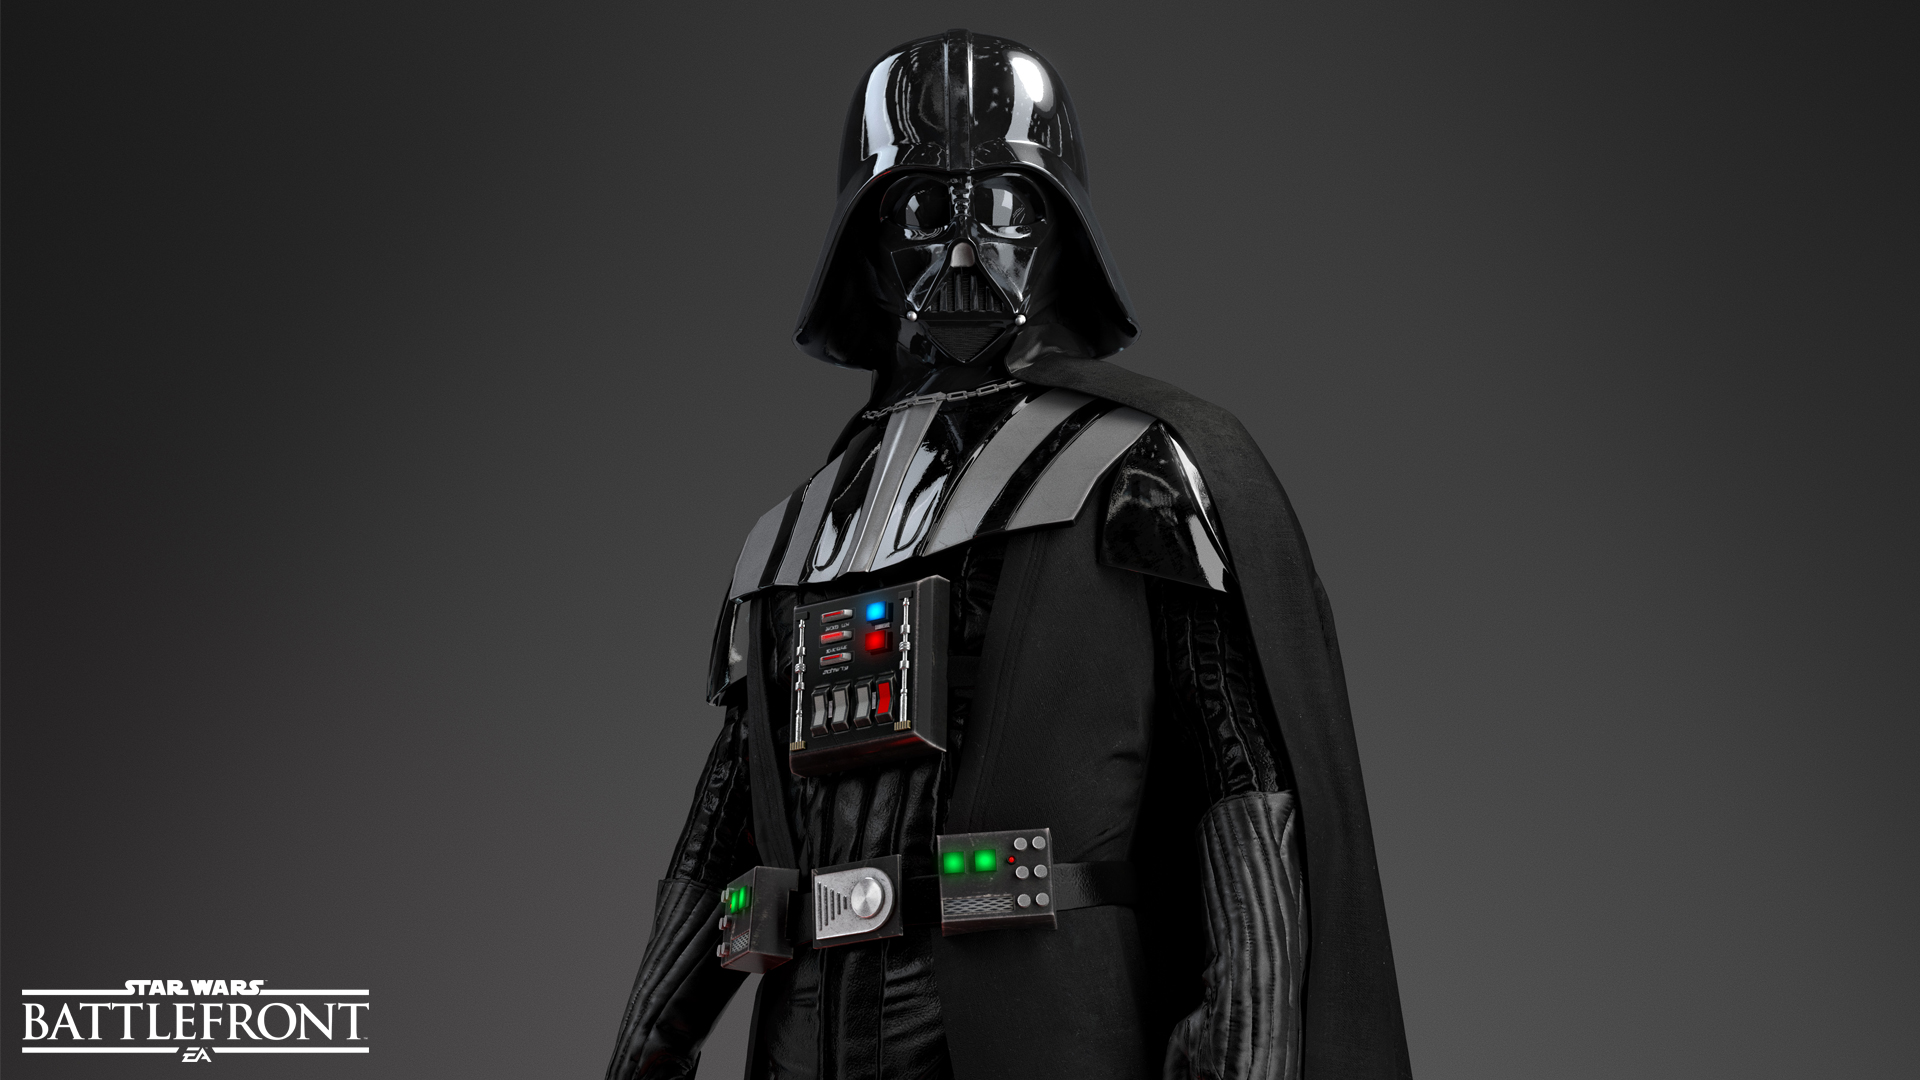 Les m chants de star wars battlefront dark vador - Personnage de starwars ...